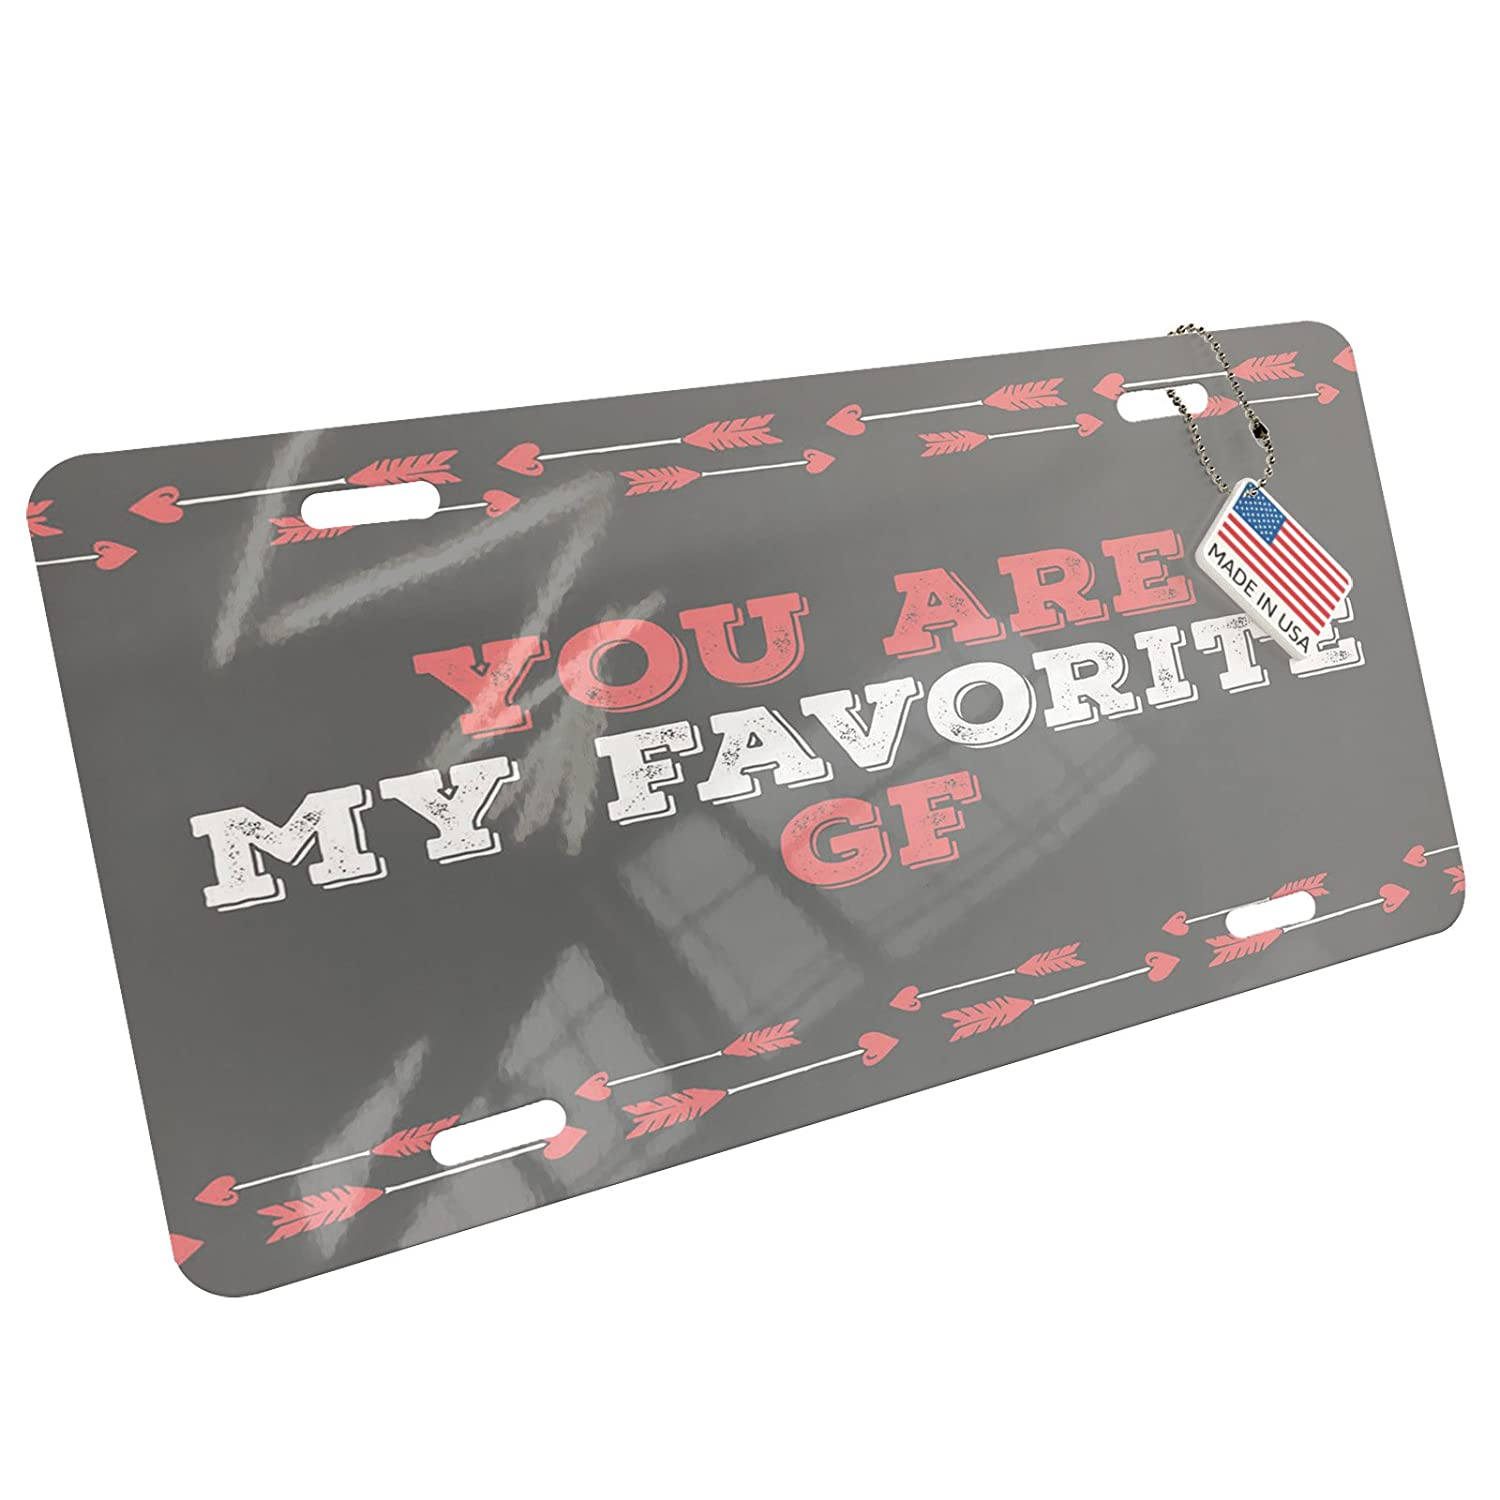 Amazon.com: NEONBLOND Metal License Plate You are My Favorite GF Valentines Day Cupids Arrows: Automotive